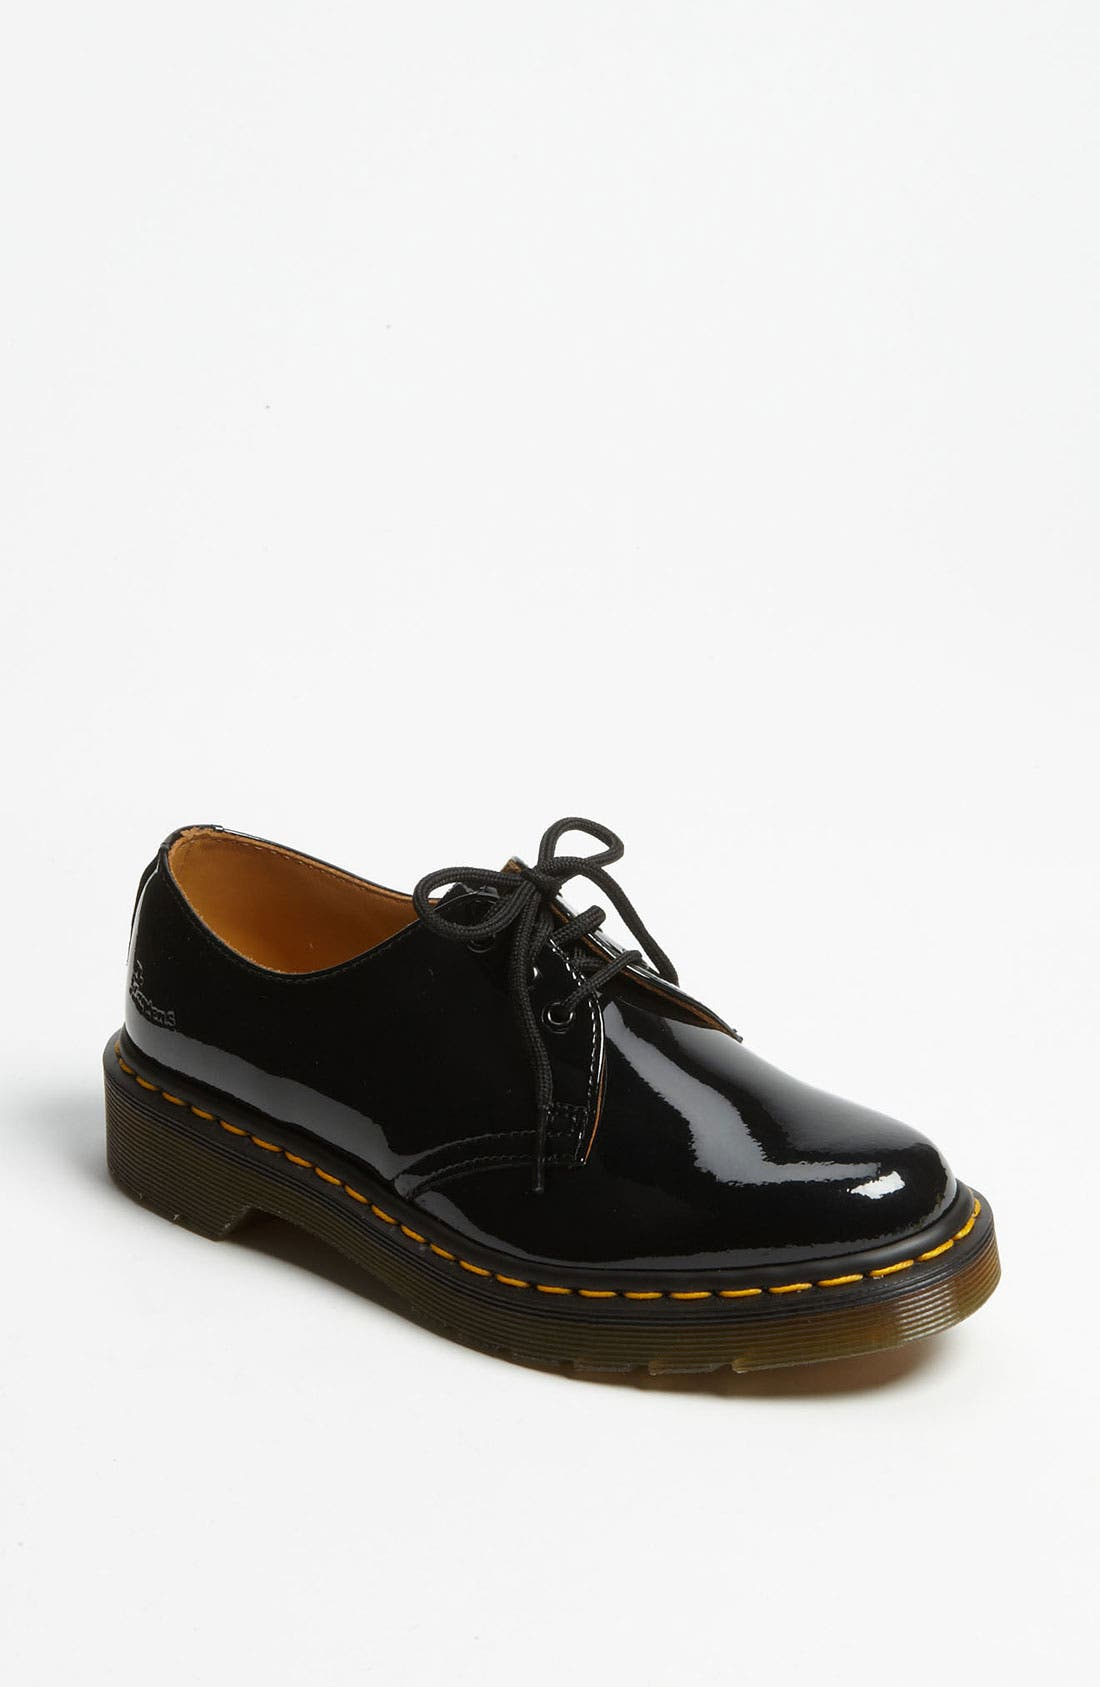 Alternate Image 1 Selected - Dr. Martens 3-Eye Oxford